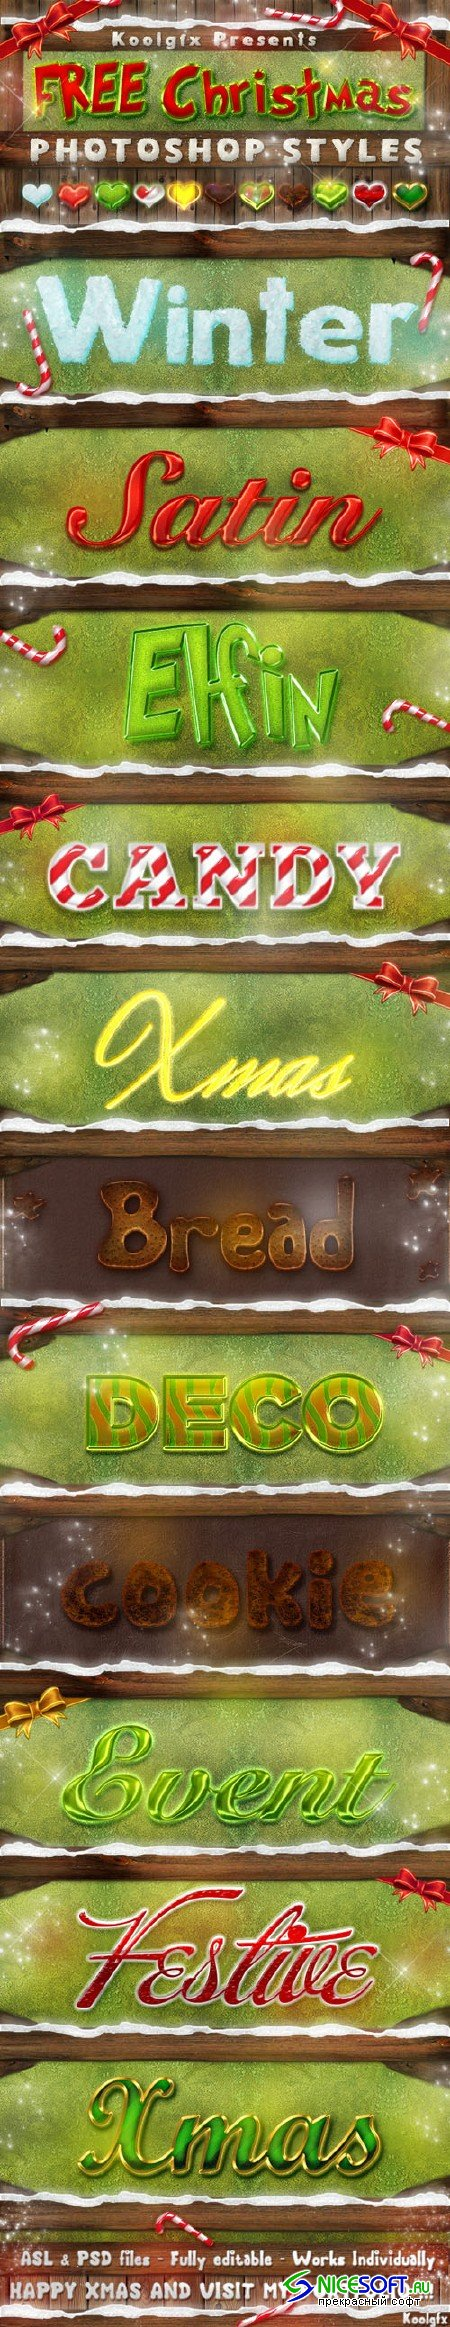 Merry Christmas Text Effect Photoshop Styles